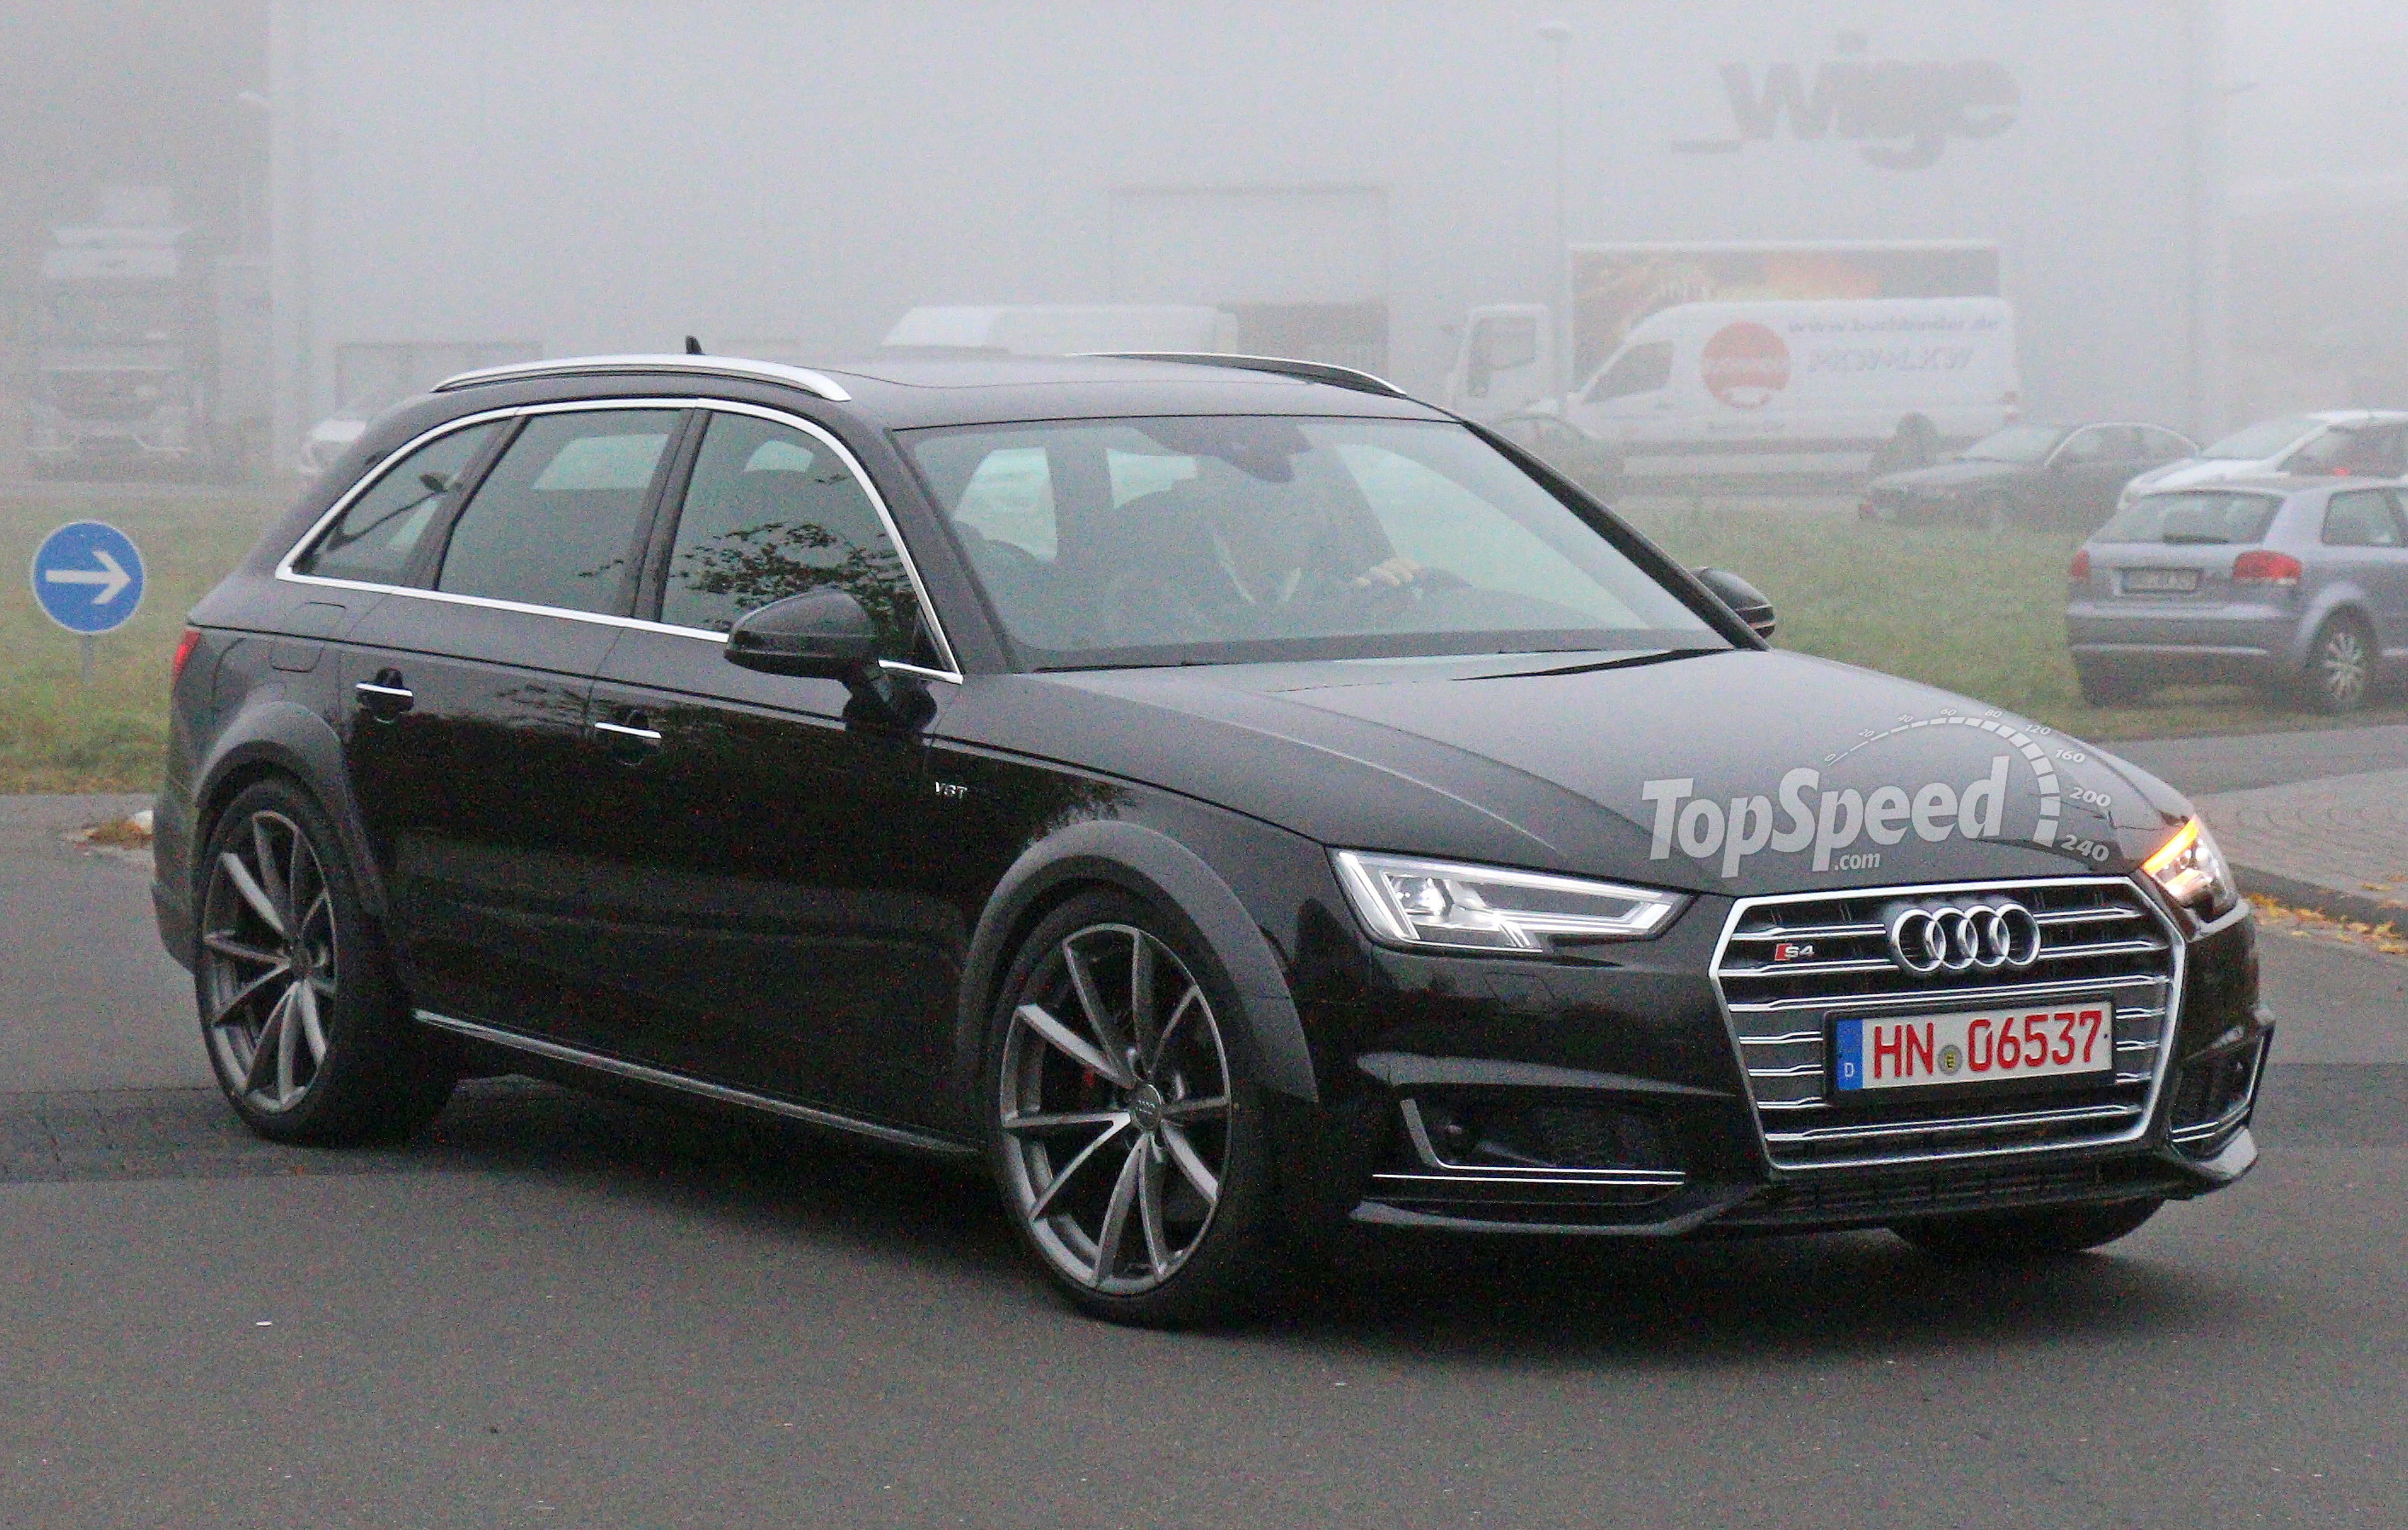 With audi having already launched the new generation 2016 audi a4 sedan and a4 avant we can t help but wonder when will the high performance rs versions of